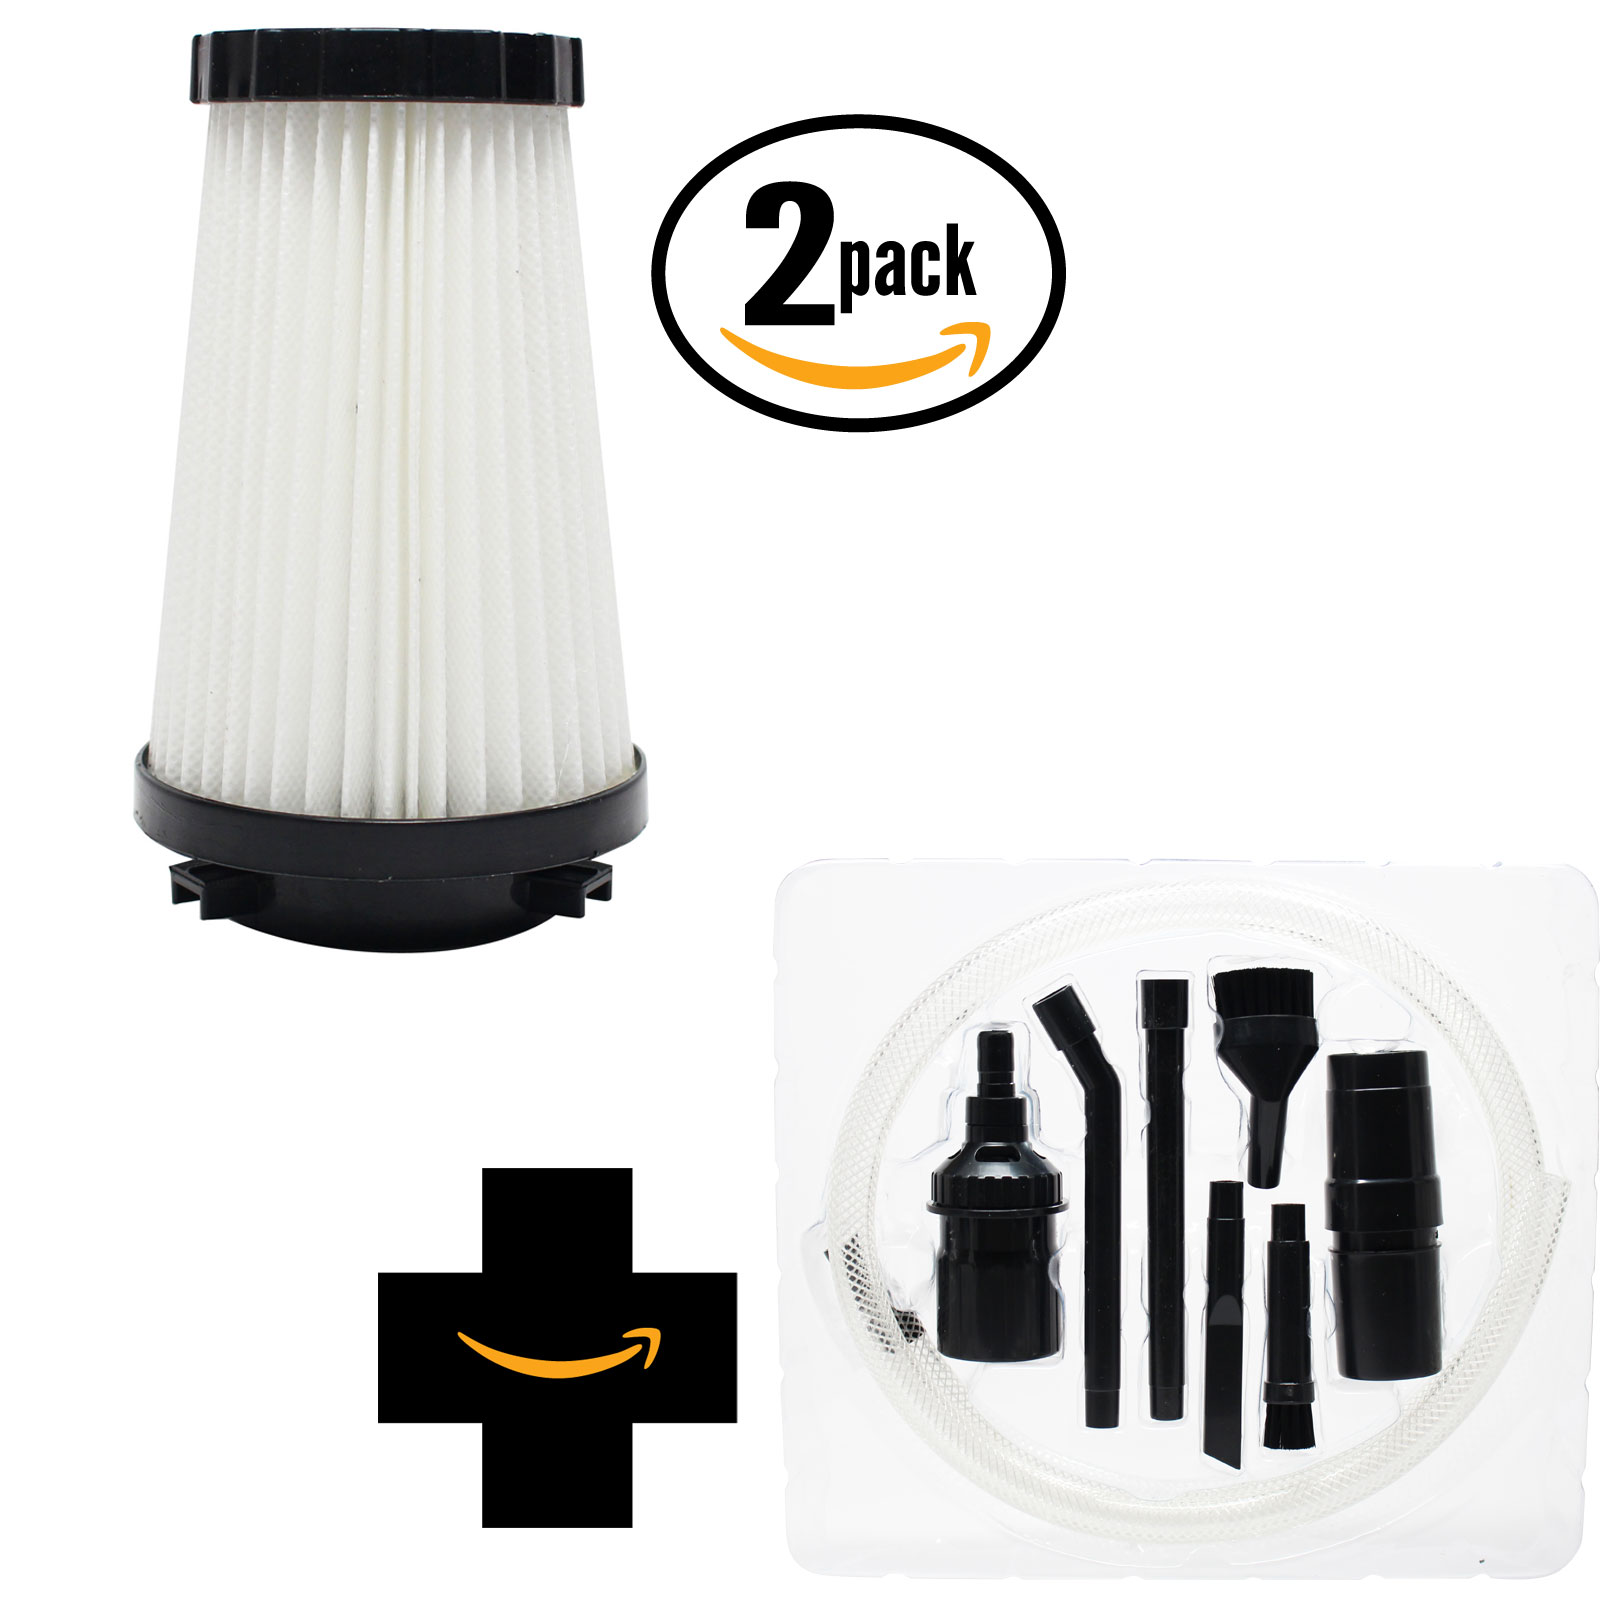 2-Pack Replacement Dirt Devil Dynamite Plus Bagless Upright M084650SC Vacuum HEPA Filter with 7-Piece Micro Vacuum Attachment Kit - Compatible Dirt Devil 3SFA11500X, F2 HEPA Filter